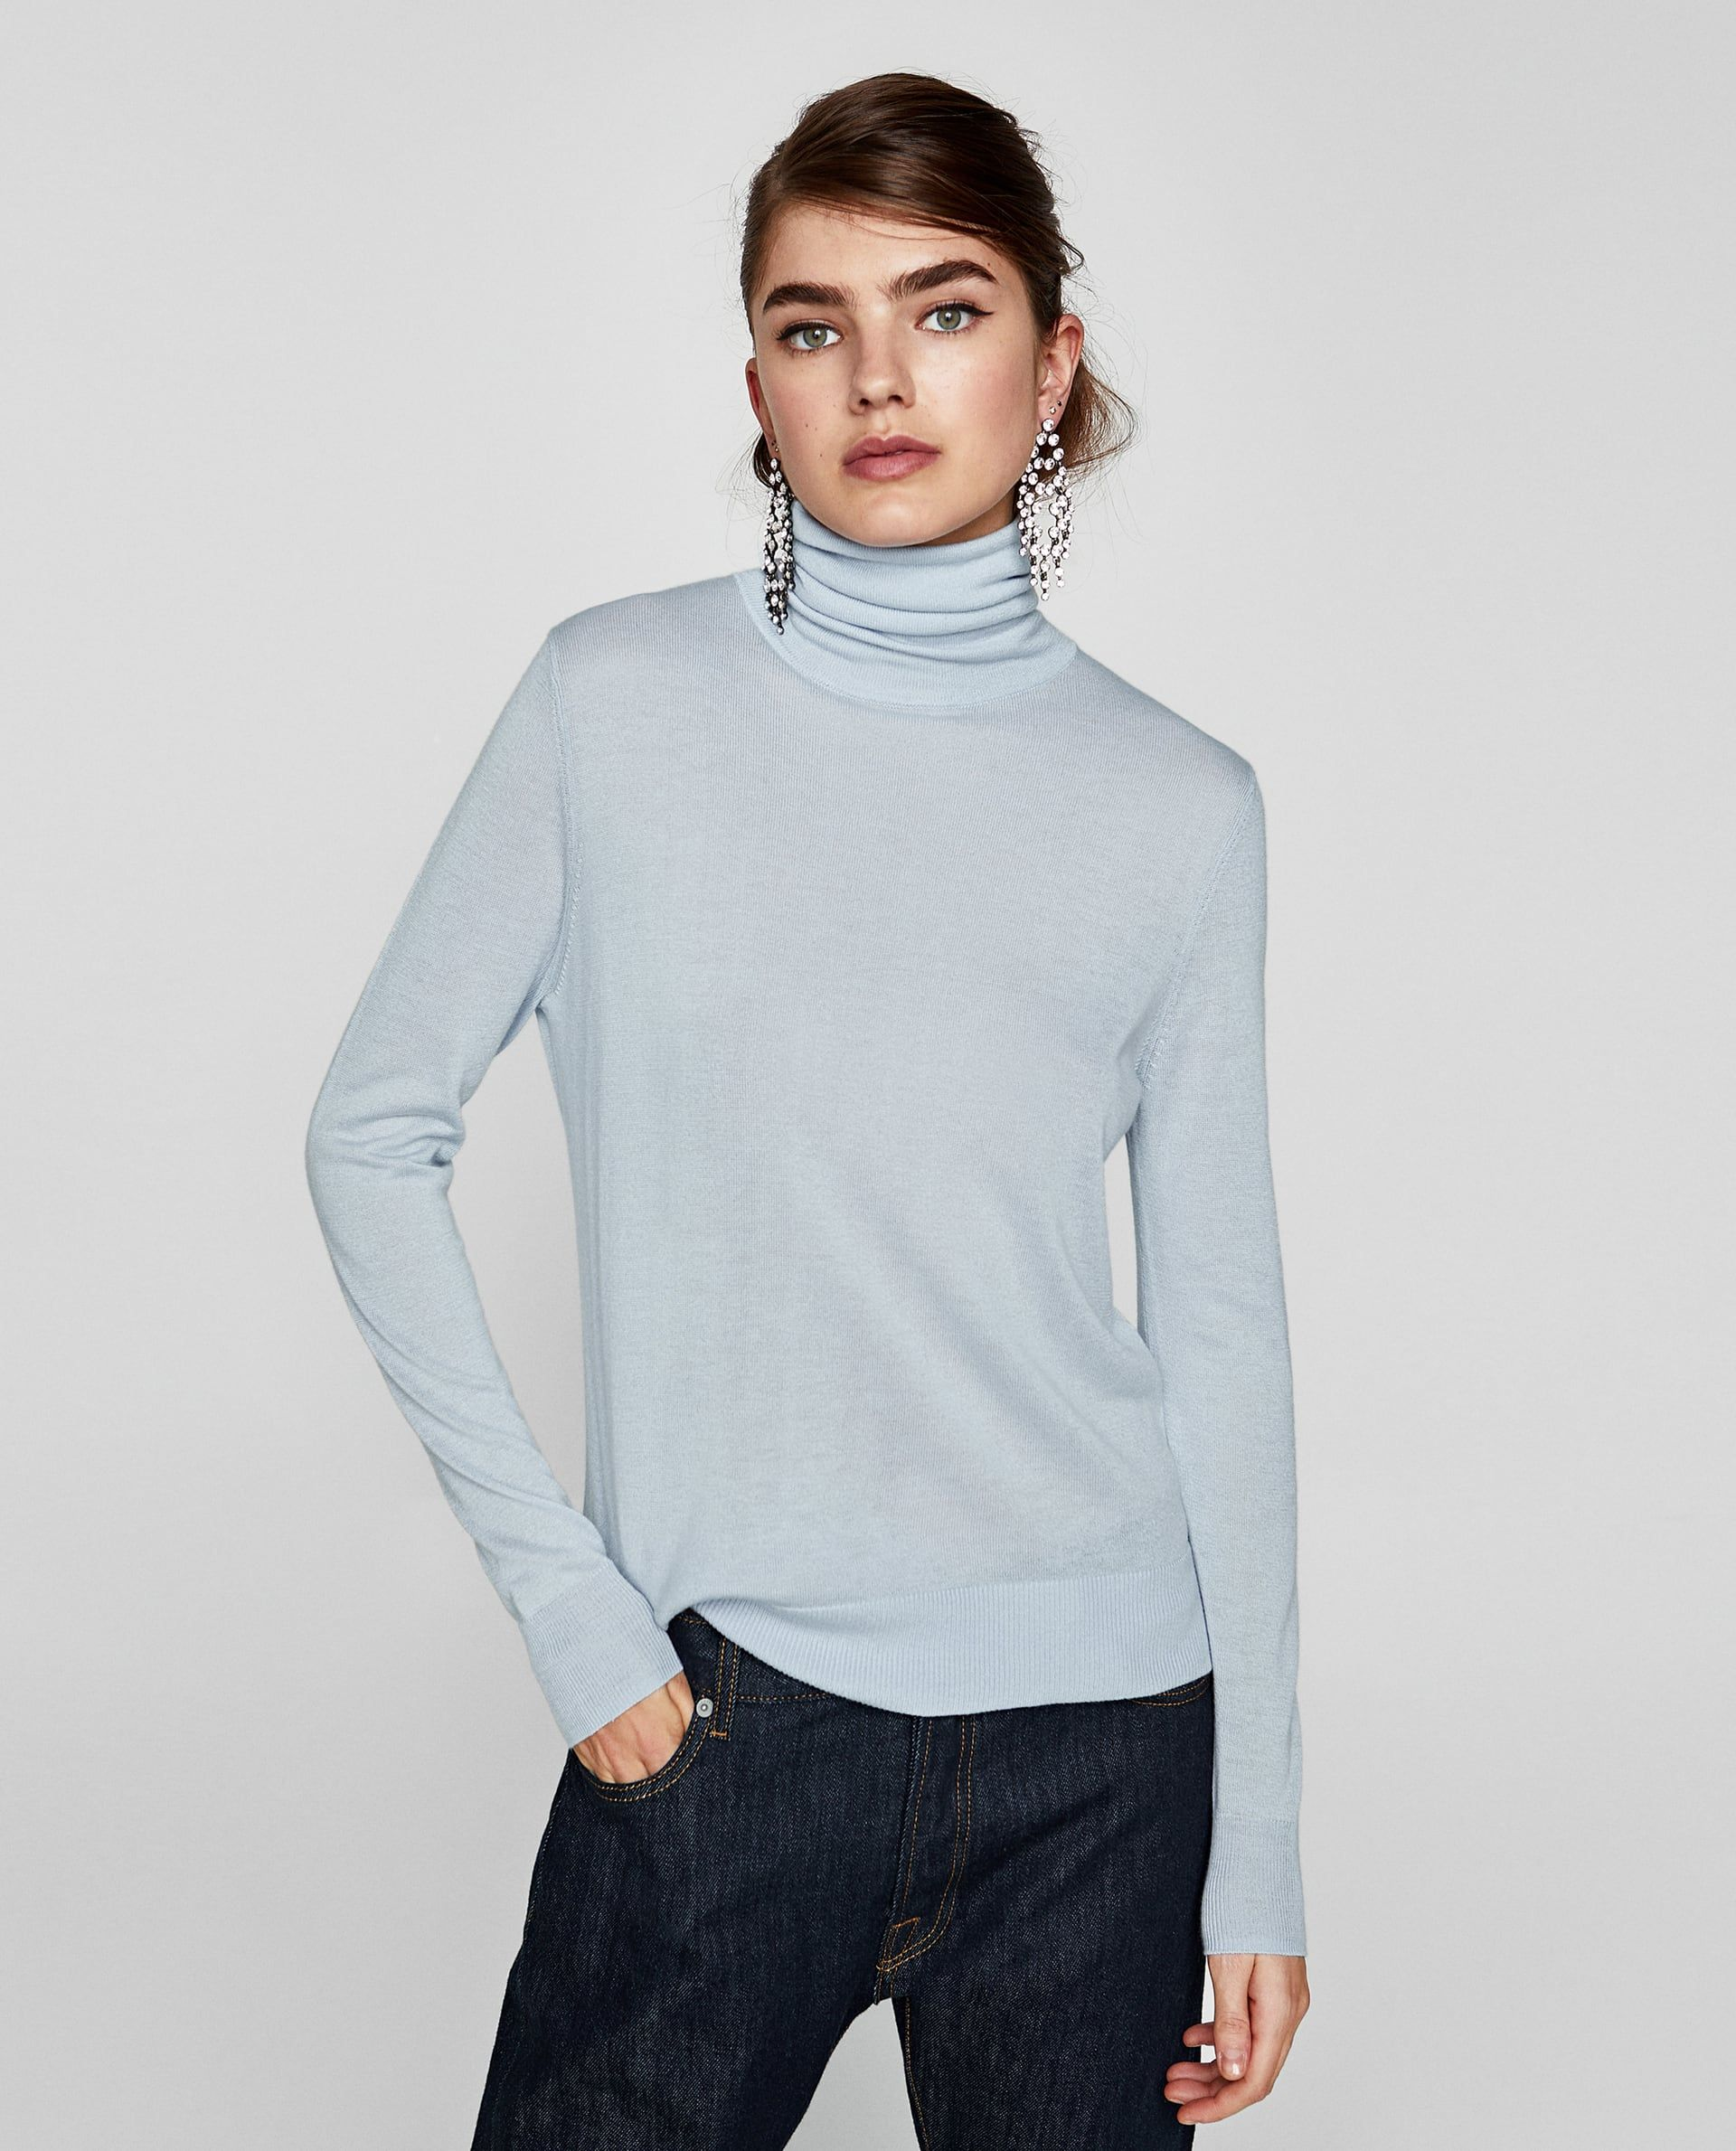 00e749689346d7 Sweaters for women that best adapt to your style at ZARA online. Oversized  pieces or classic fits.